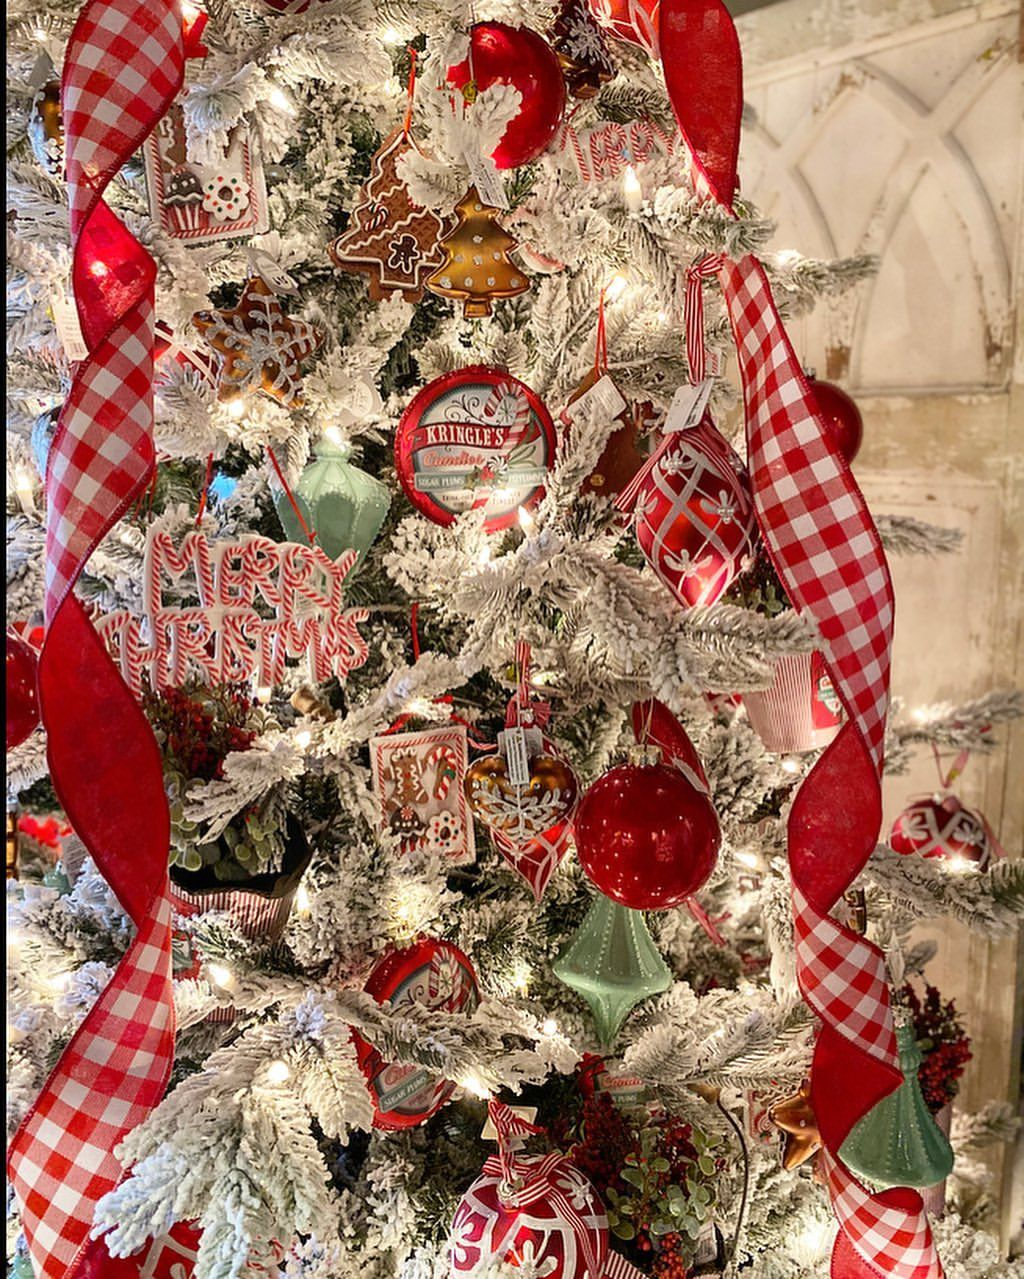 When it comes to Christmas I will tell you, we don't fool around! I think this is the most trees ...